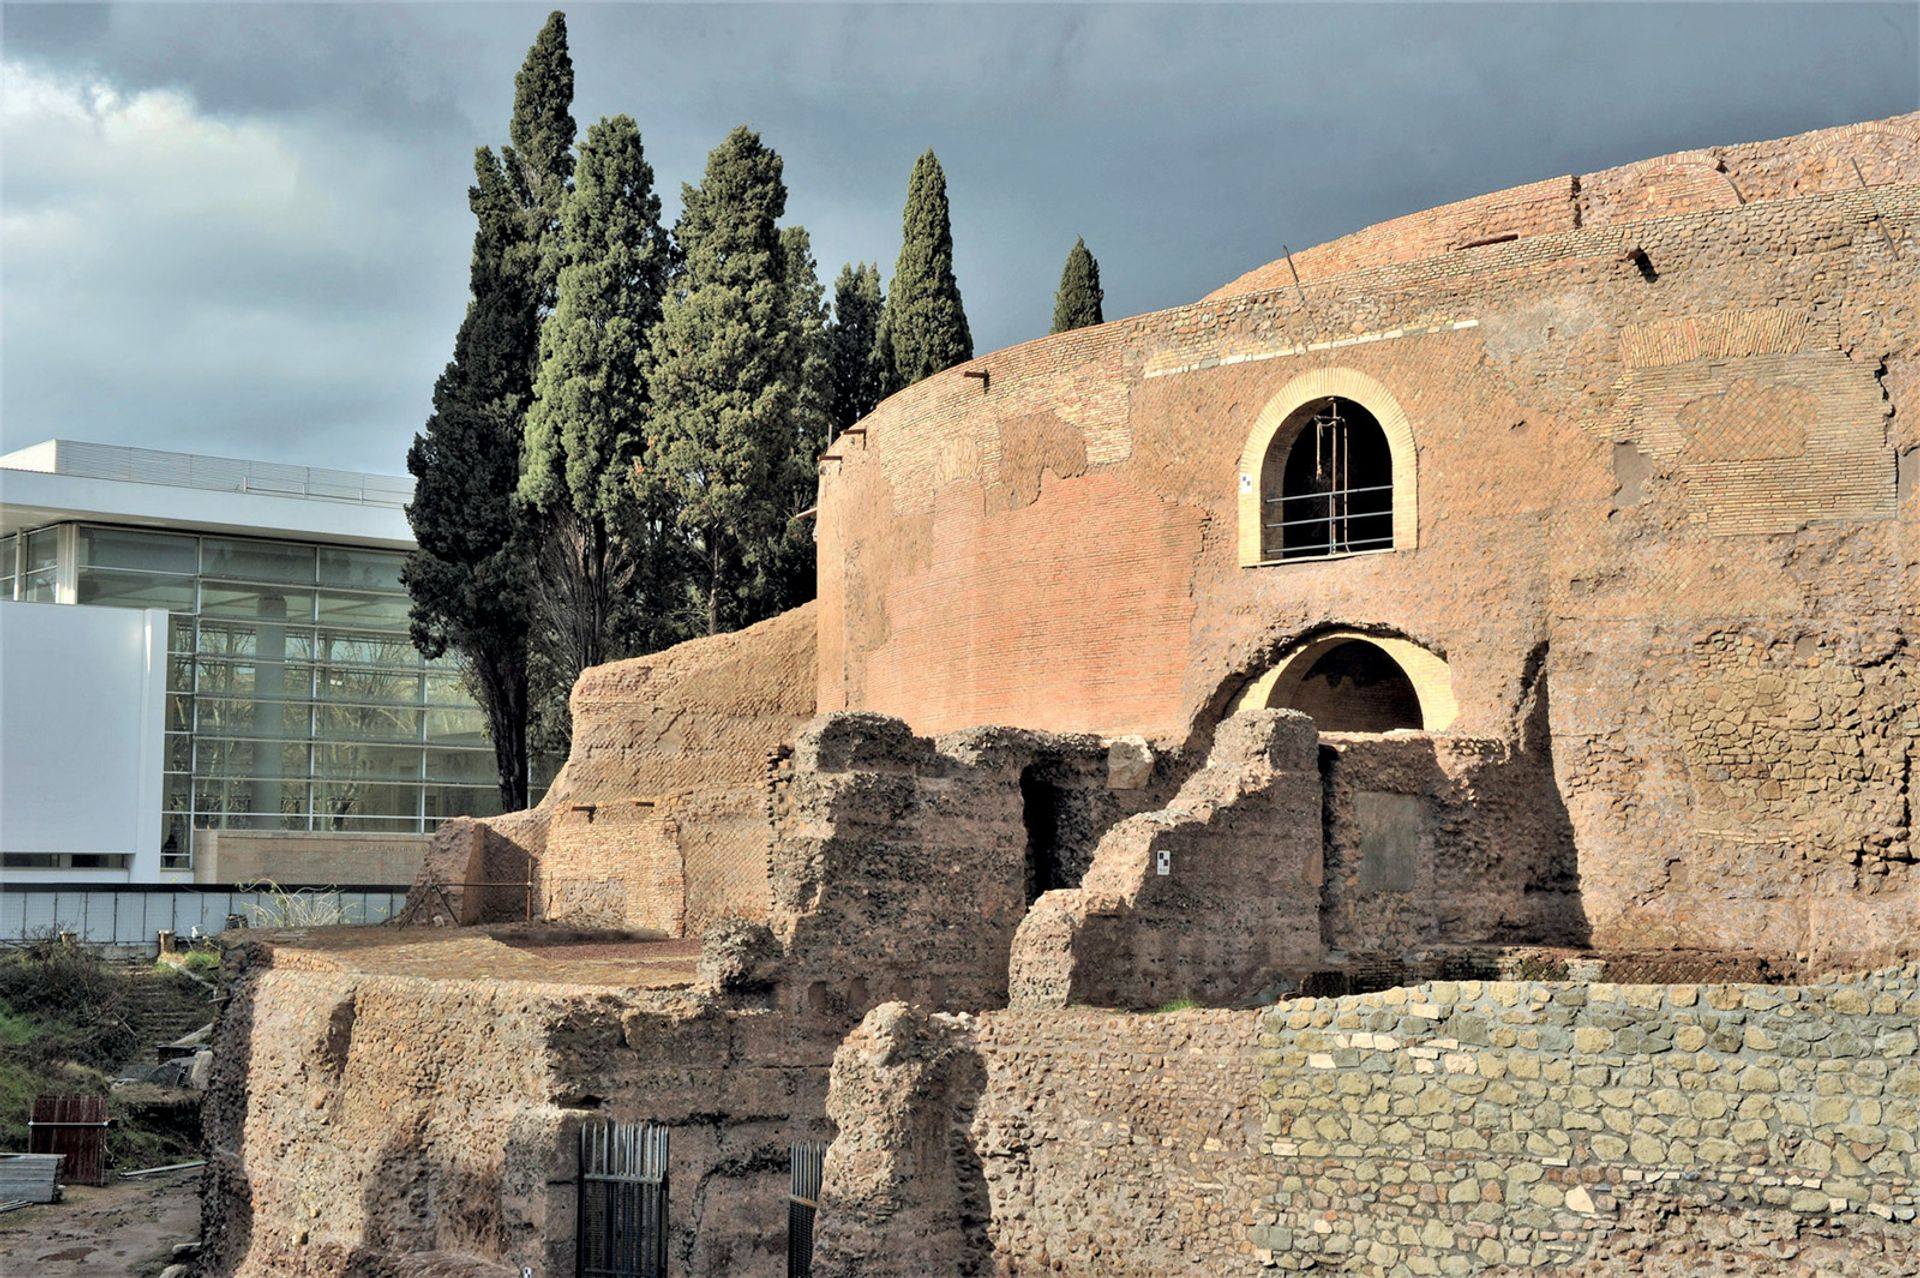 Mussolini had his eye on the 28BC mausoleum as his final resting place. Abandoned for decades after the Second World War, the Rome landmark reopened to the public on 1 March Photo: Sovrintendenza Capitolina ai Beni Culturali - Roma Capitale